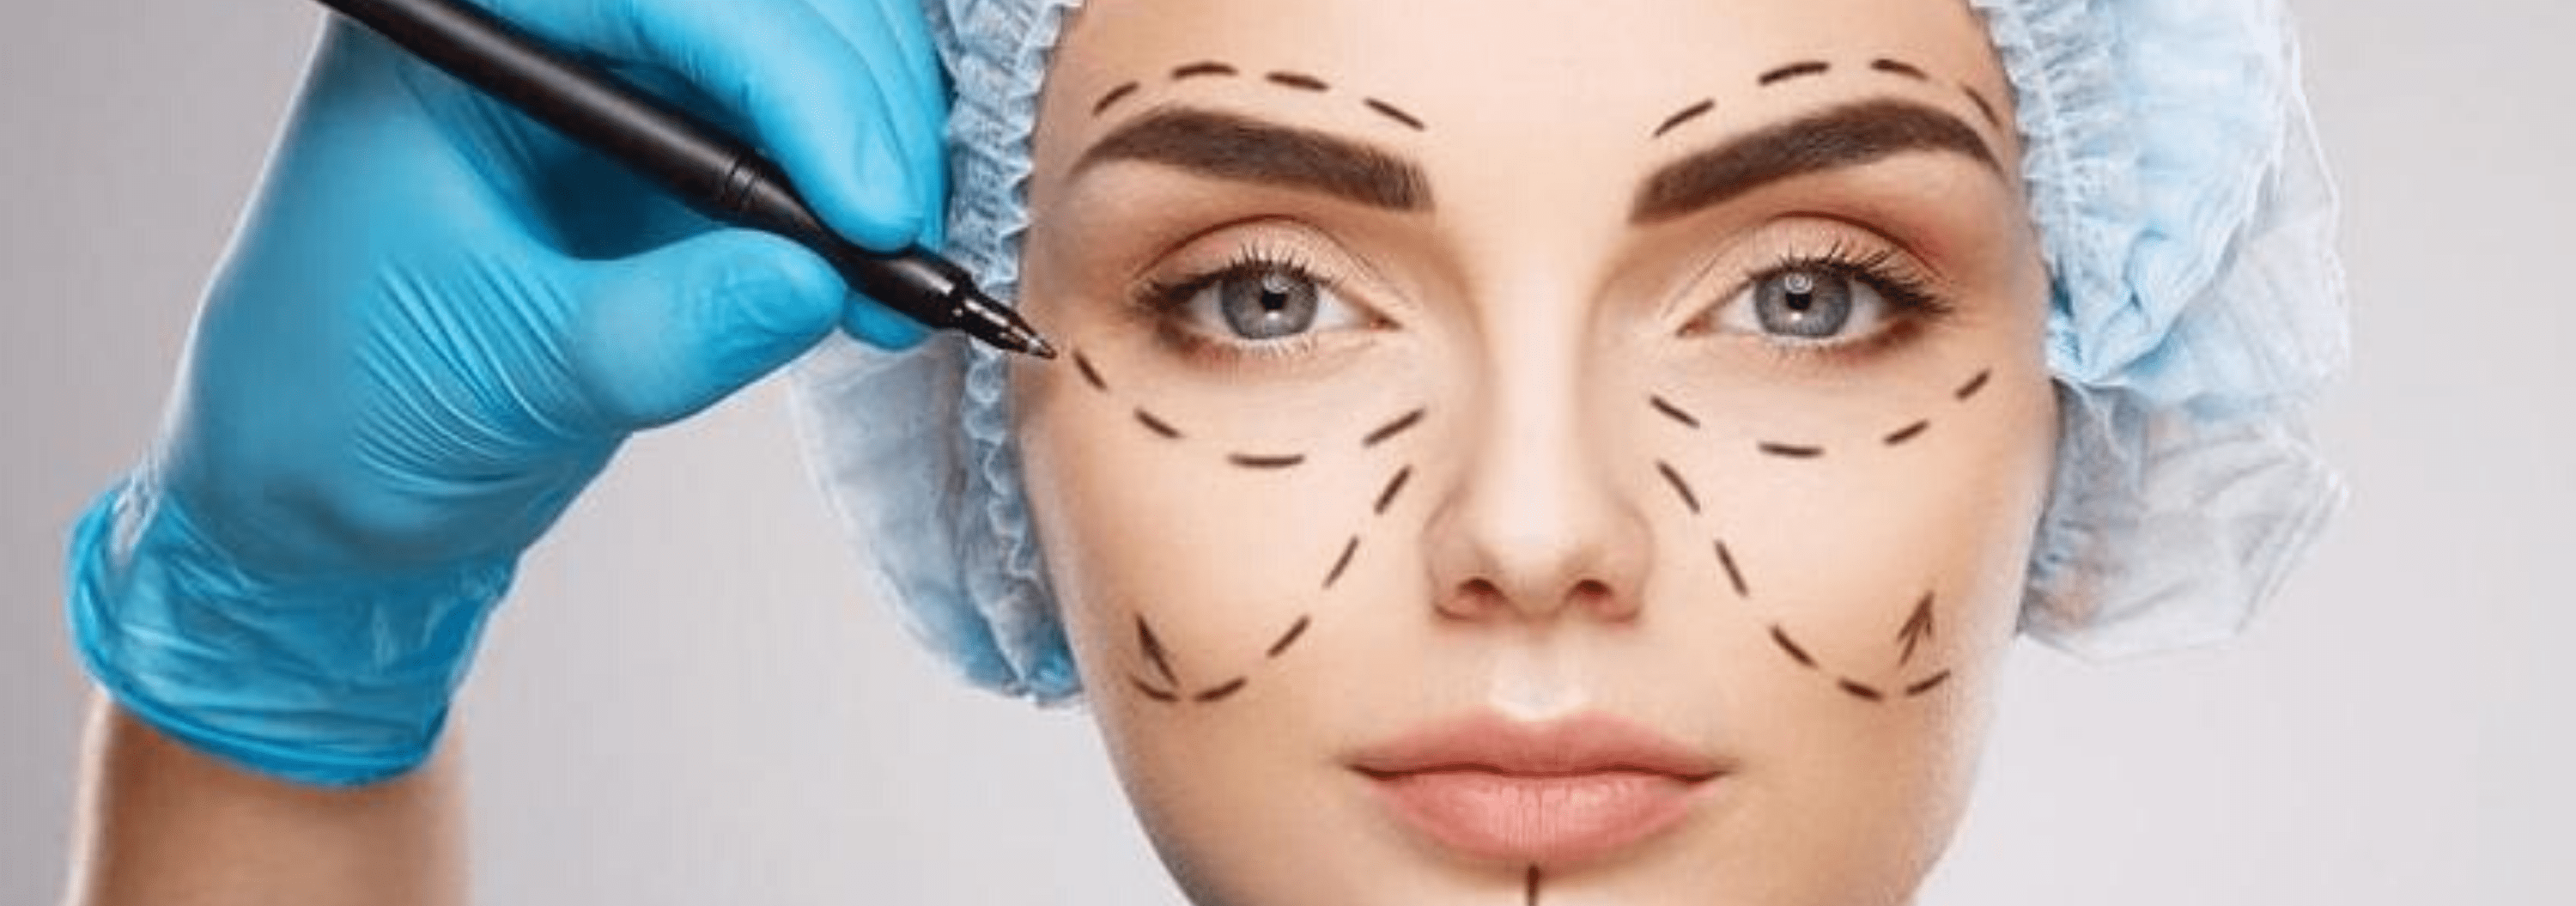 Best places to get plastic surgery for Americans: Top 5 countries | BOOKIMED